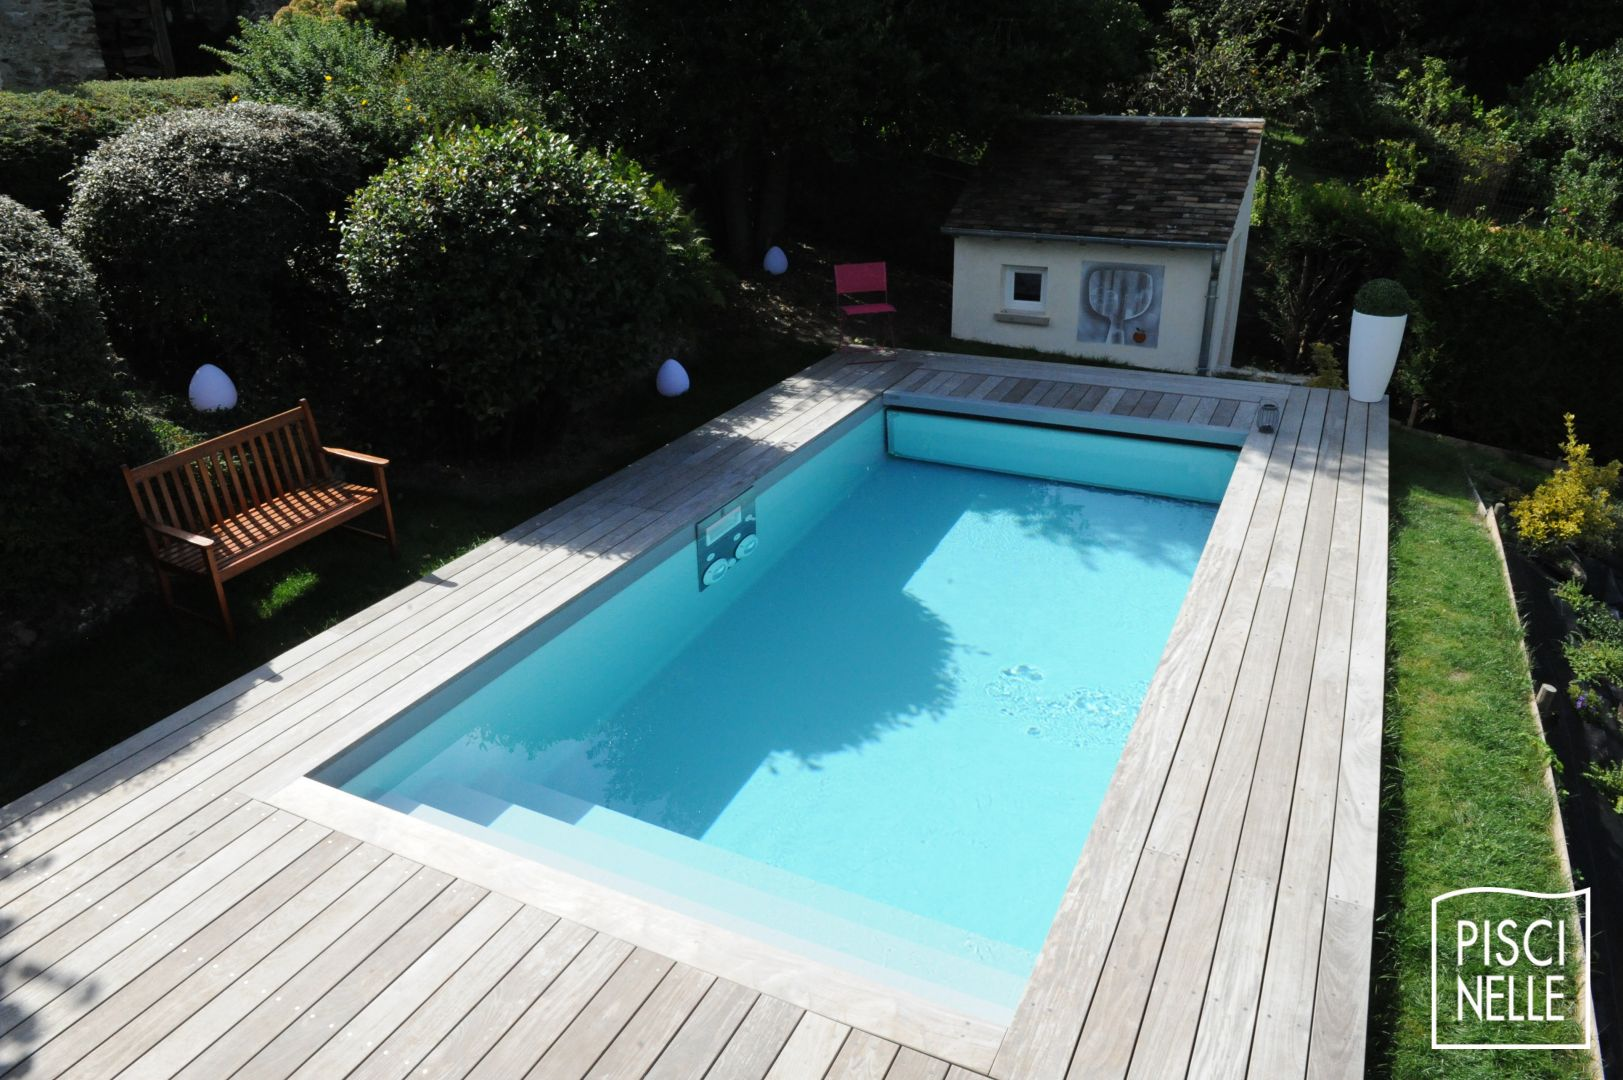 Petite piscine design rectangulaire conviviale for Piscine celestine 7